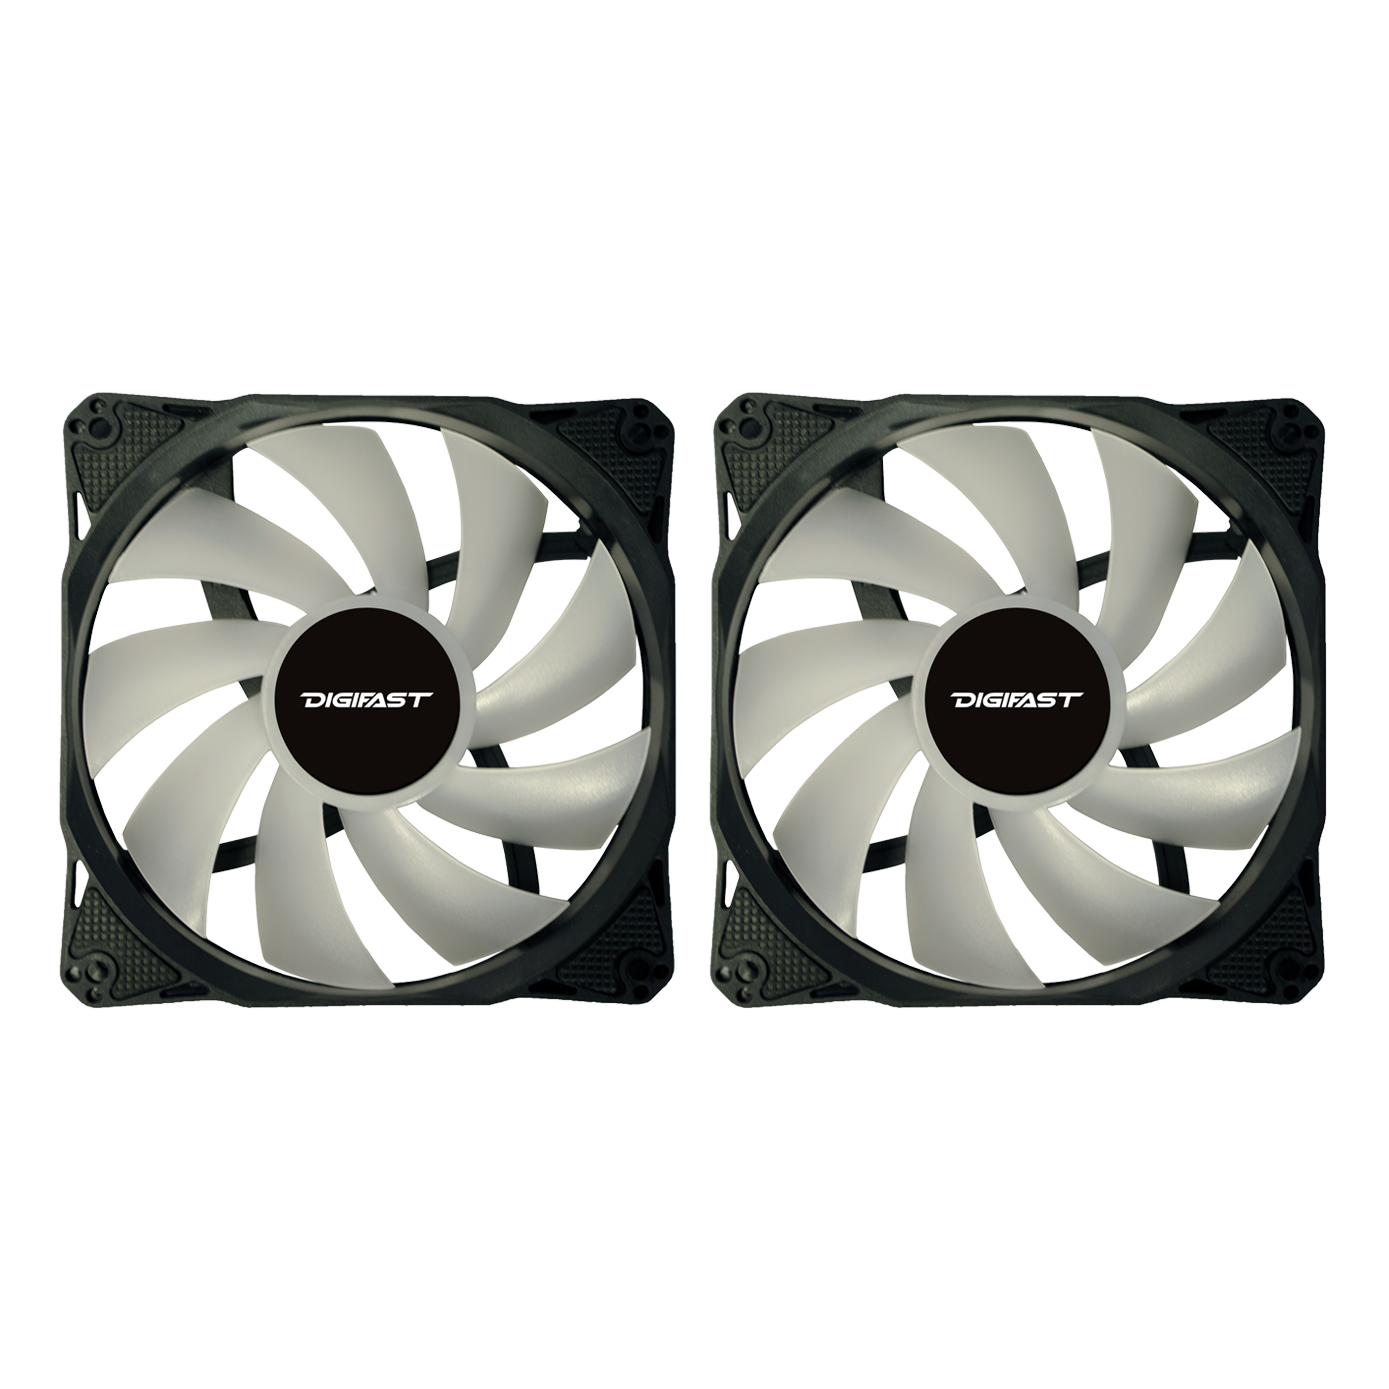 Digifast Notos quantity 2 120 mm RGB fan